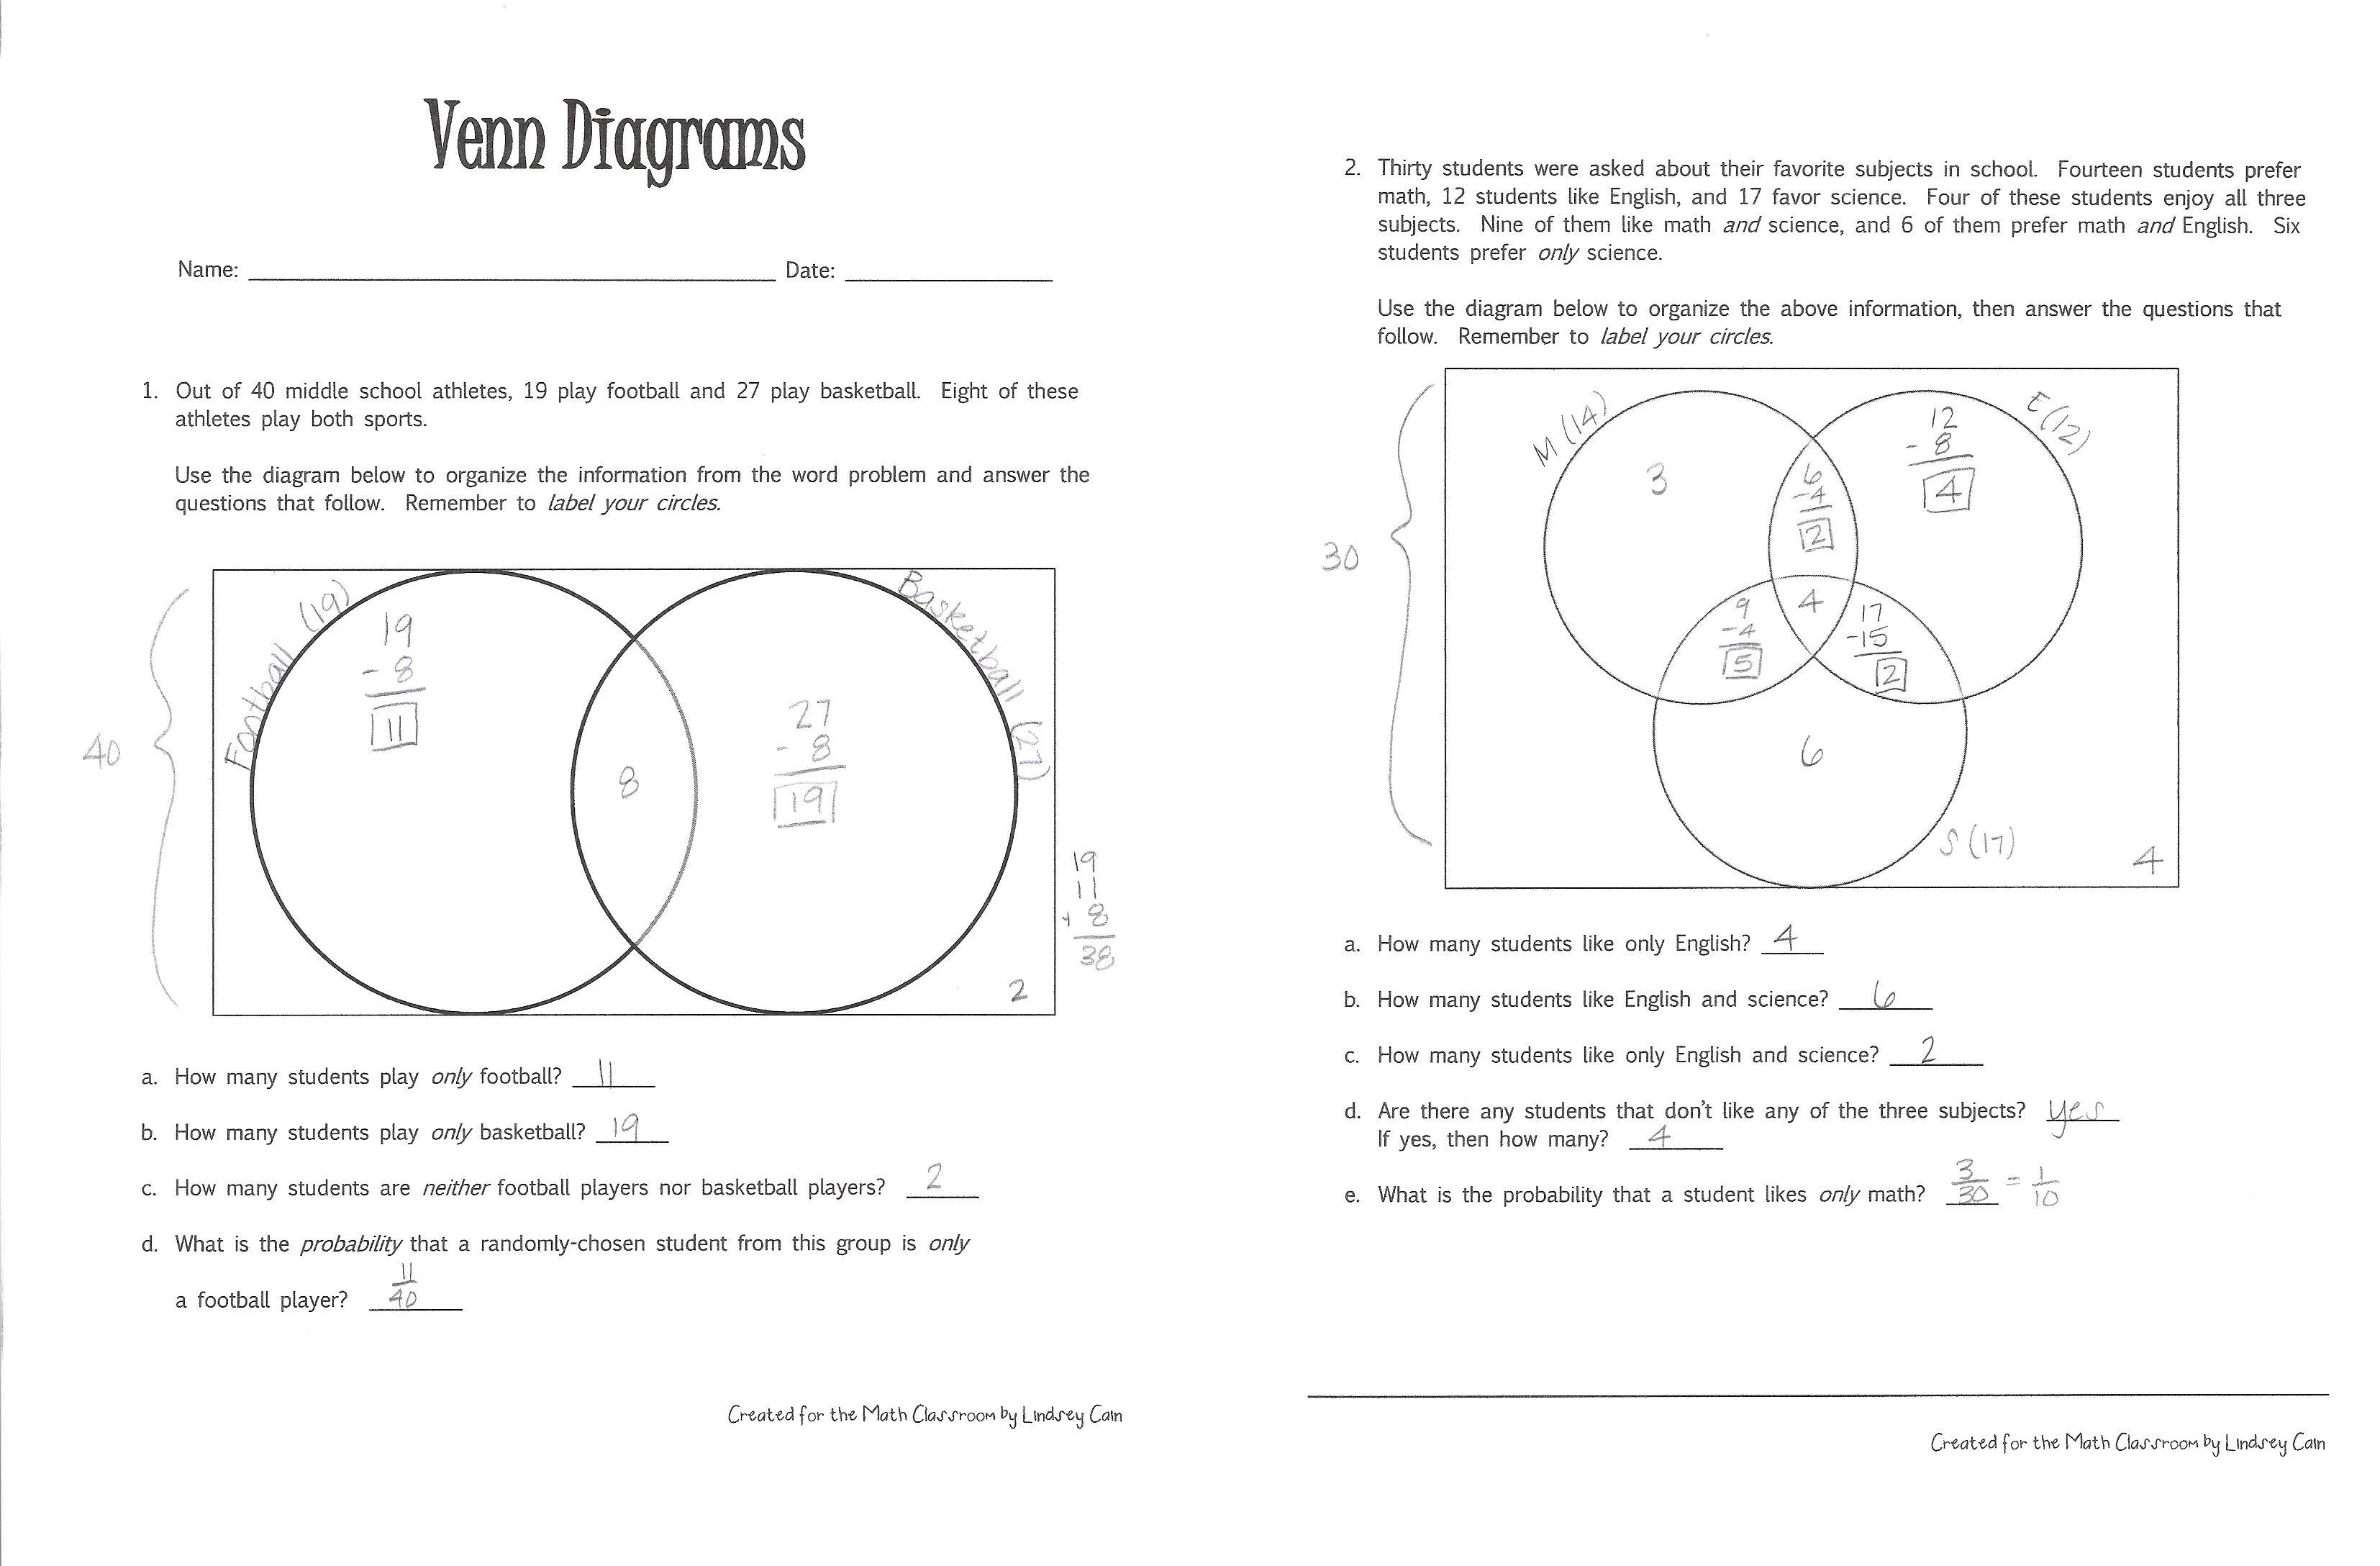 how to fill out a venn diagram borax crystal diagrams literacy strategies for the math classroom worksheet example